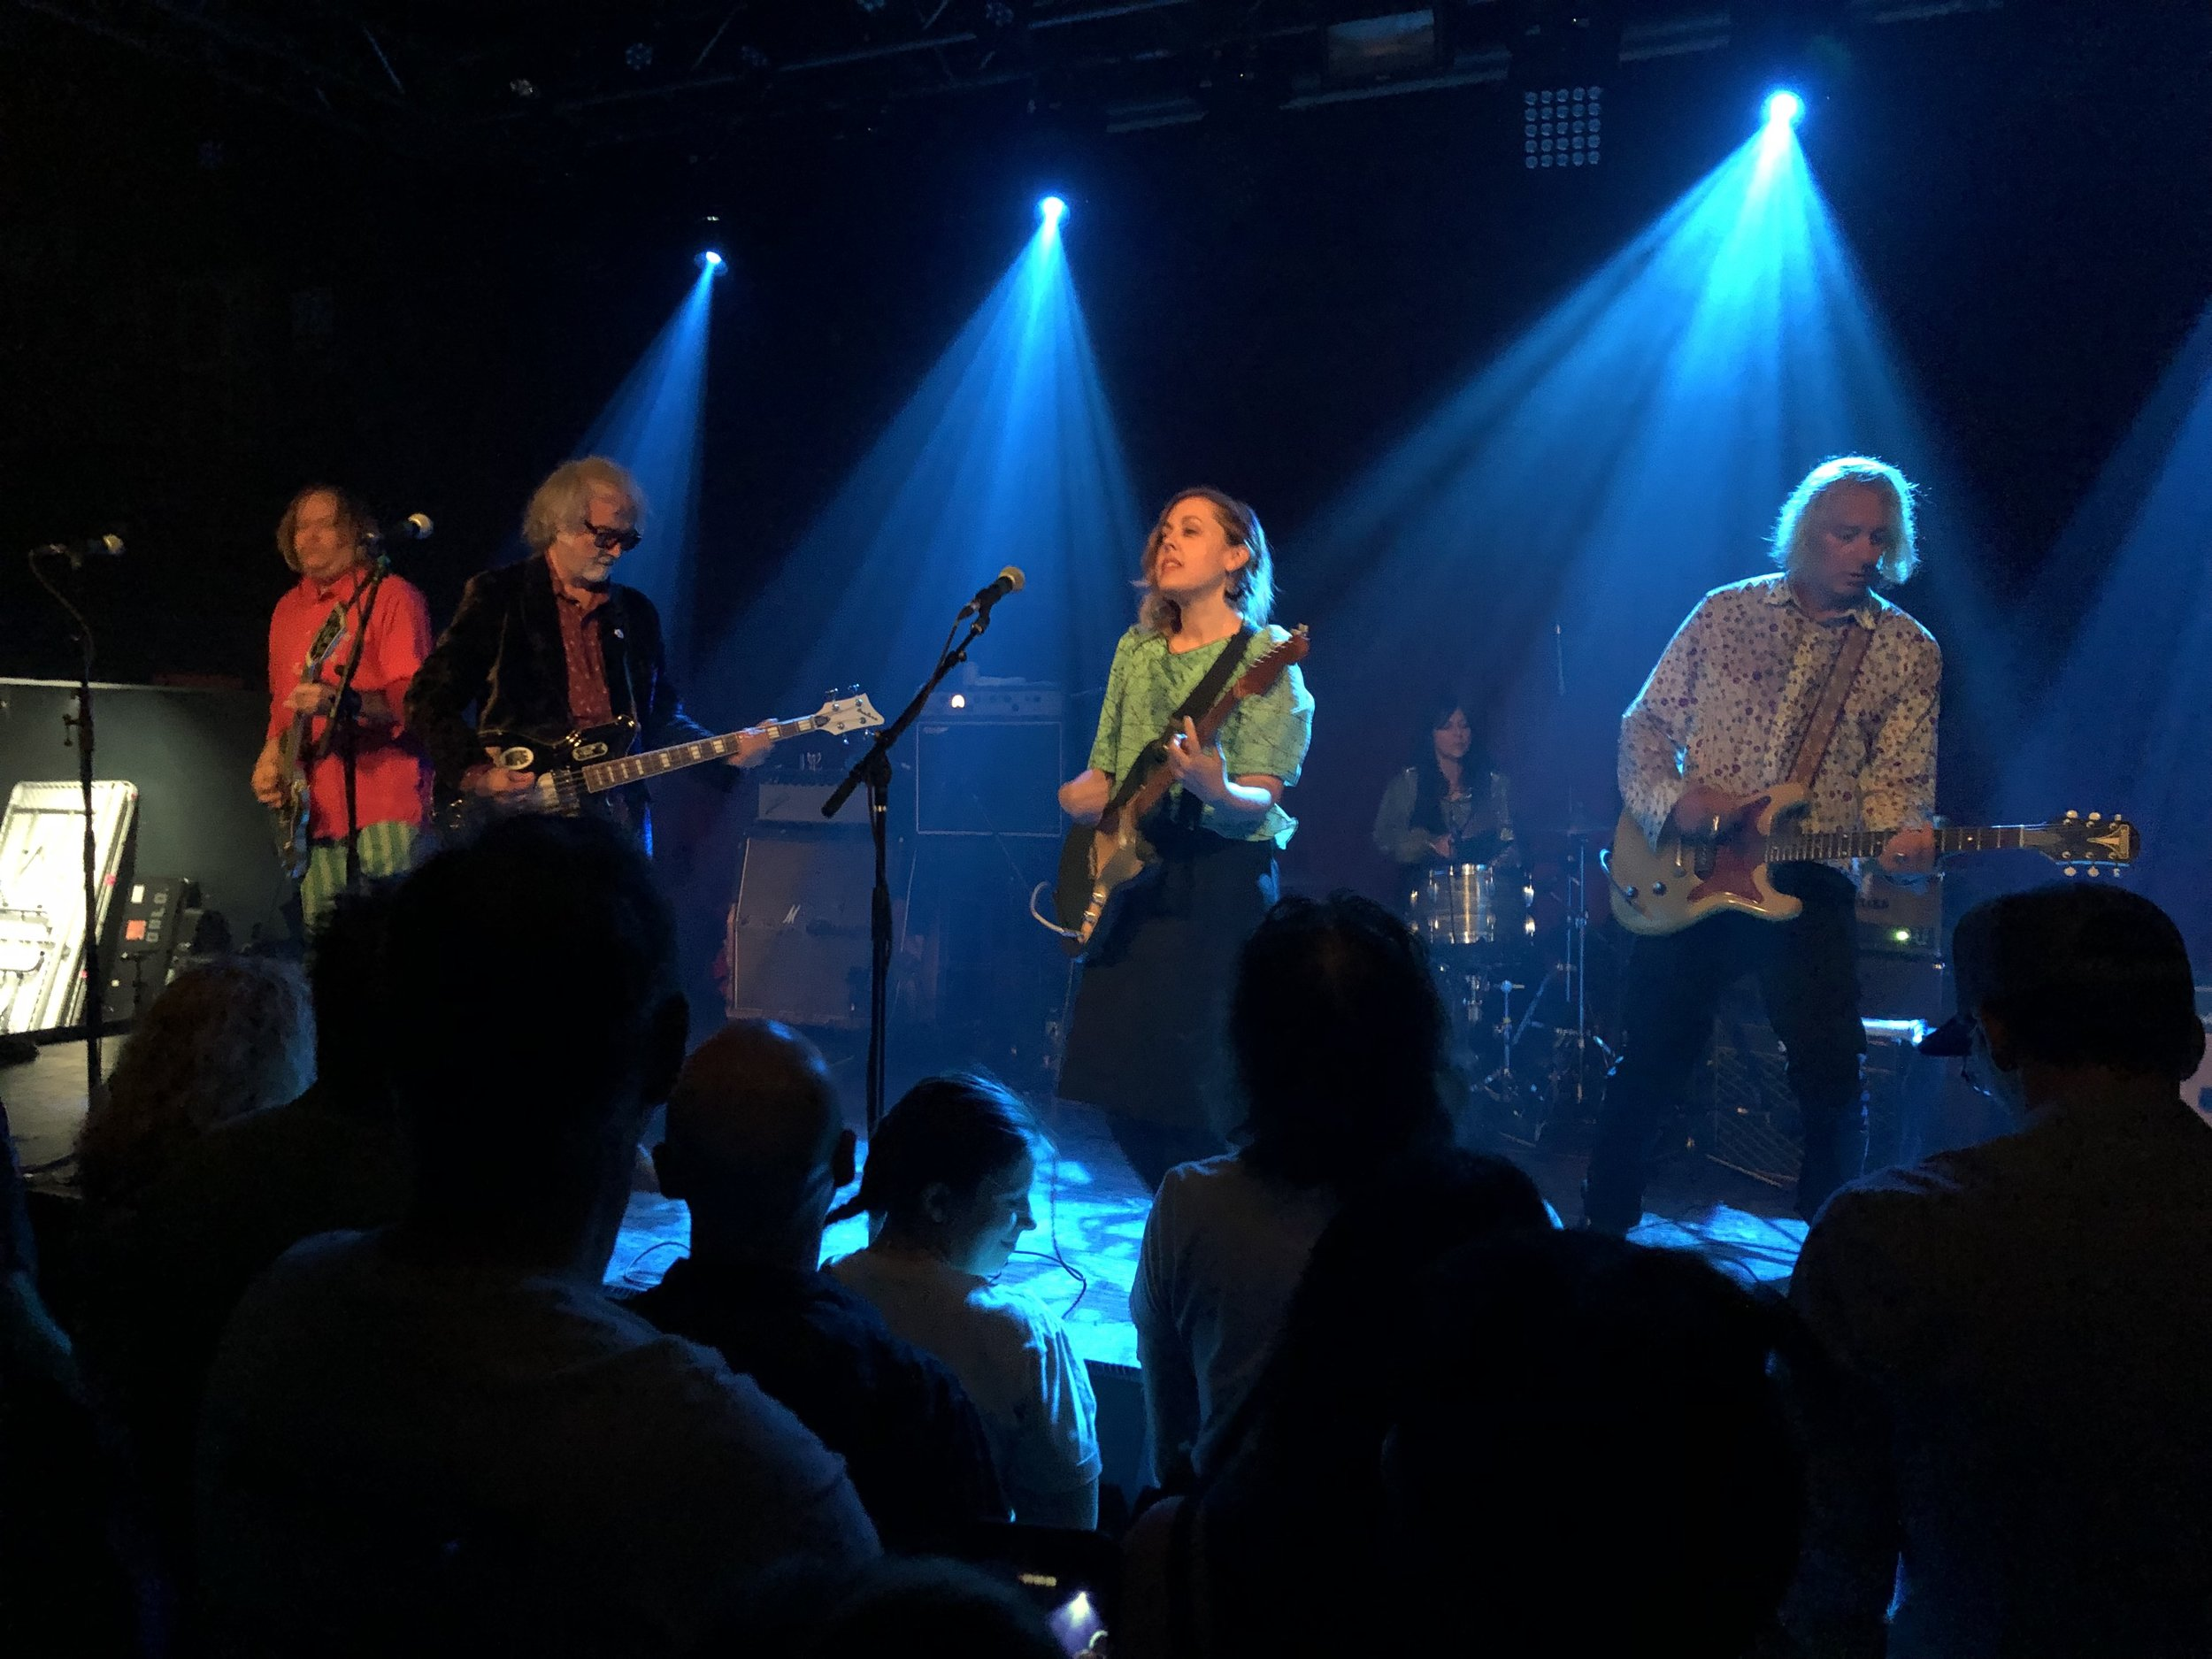 Filthy Friends (left to right) - Kurt Block, Scott McCaughey, Corin Tucker, Linda Pitmon, Peter Buck